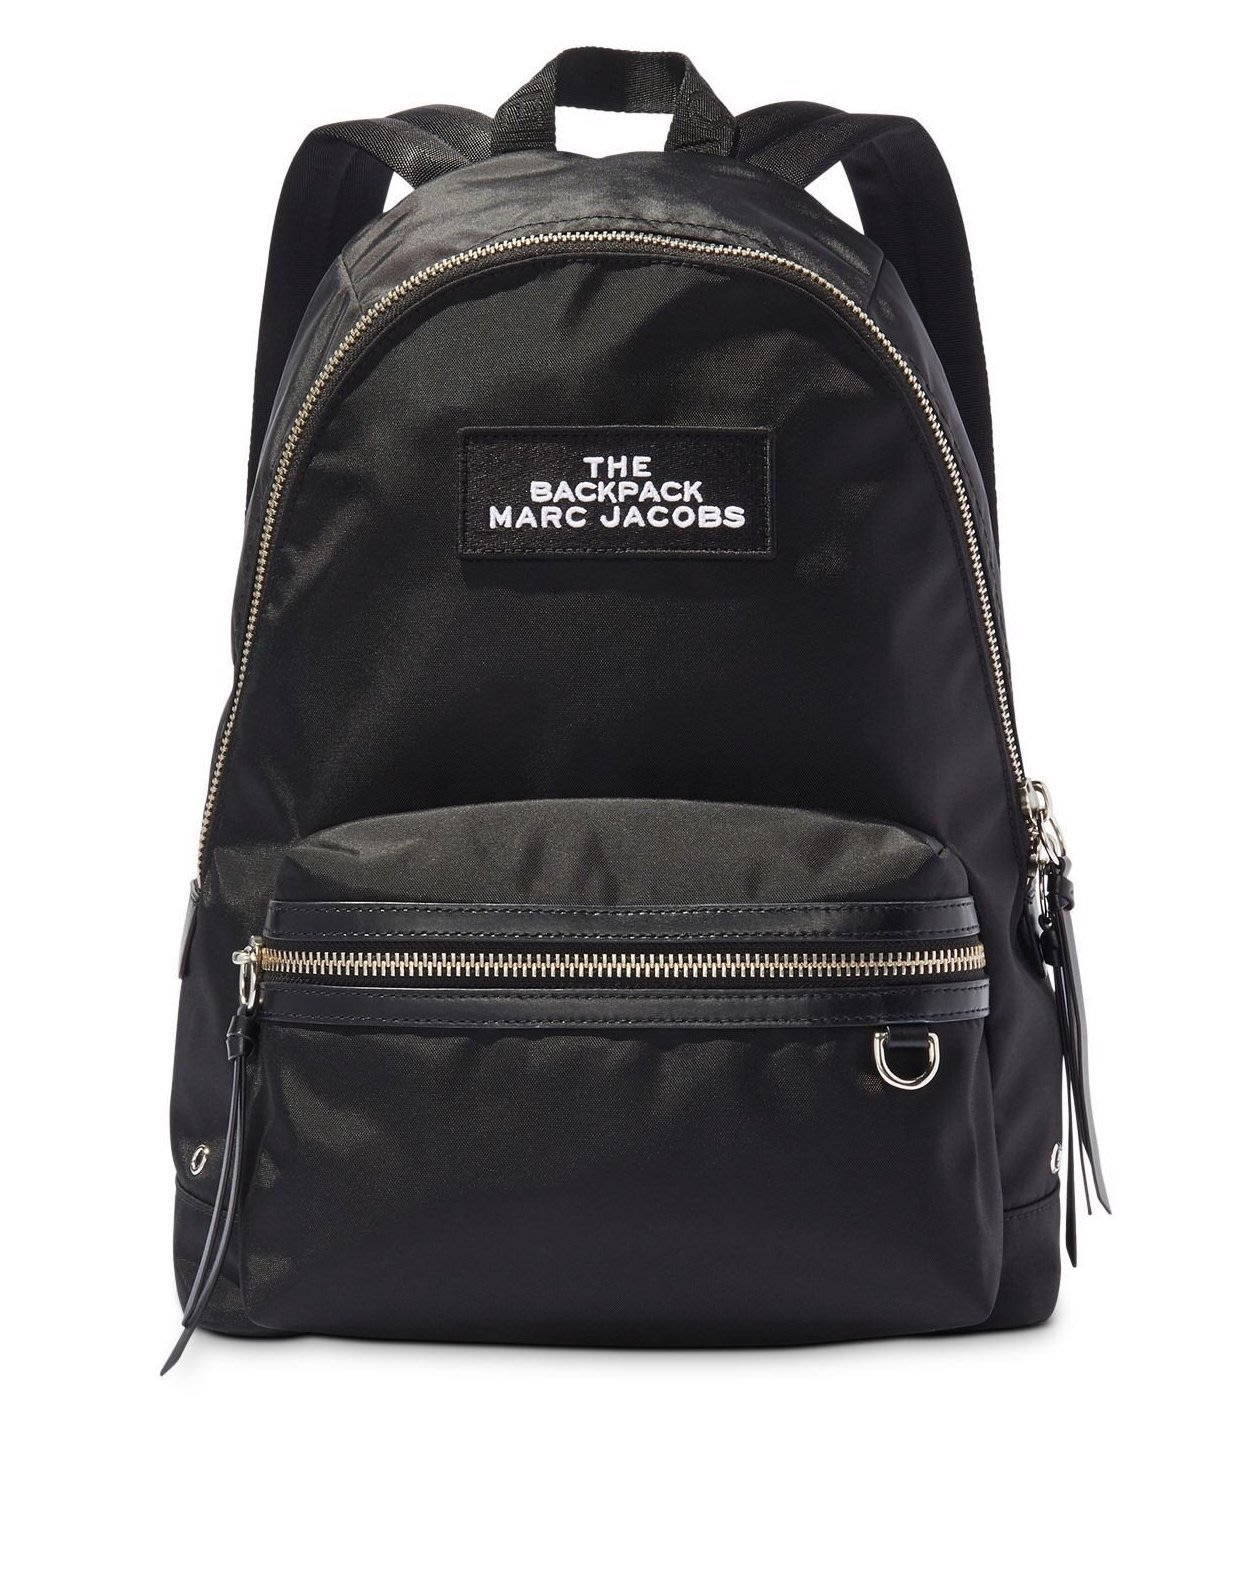 Coco 小舖 MARC JACOBS Large Nylon Backpack 黑色尼龍後背包